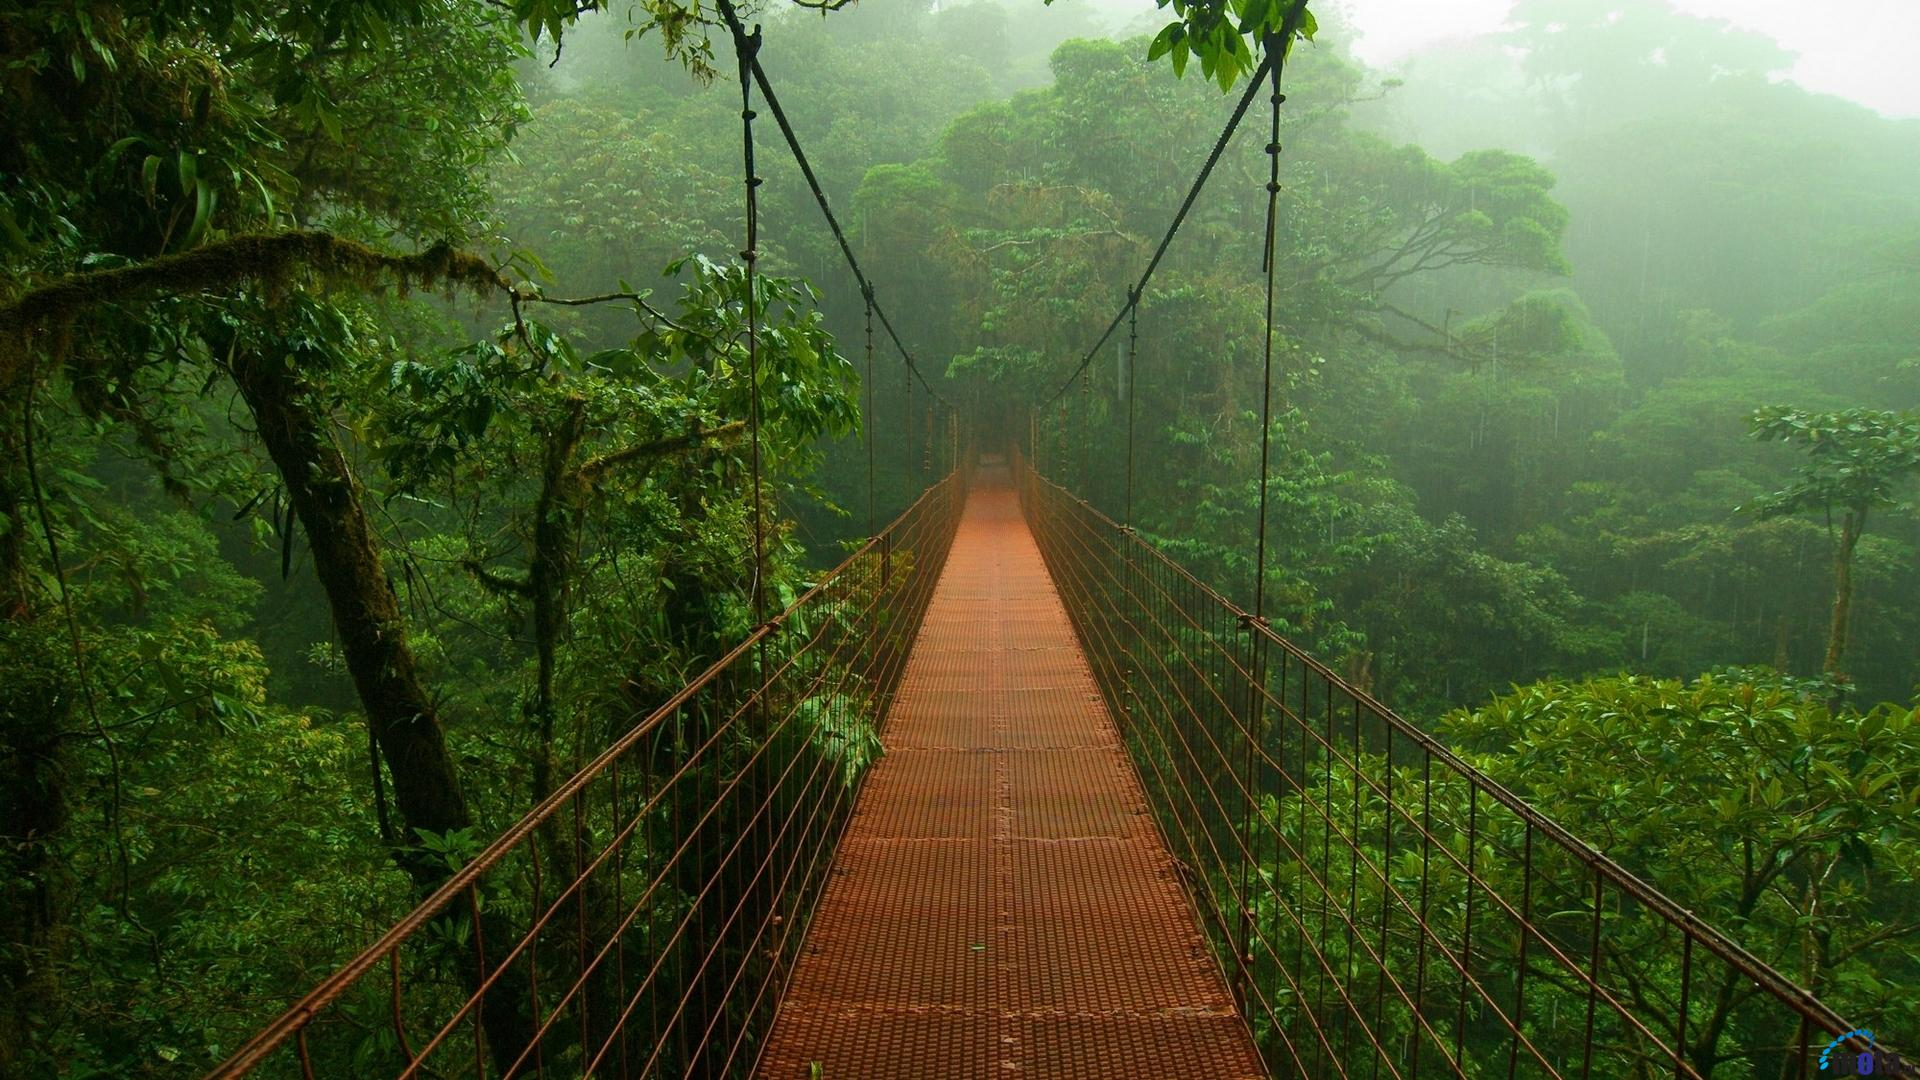 Amazon Jungle Wallpapers | Top HDQ Amazon Jungle Images, Wallpapers ...